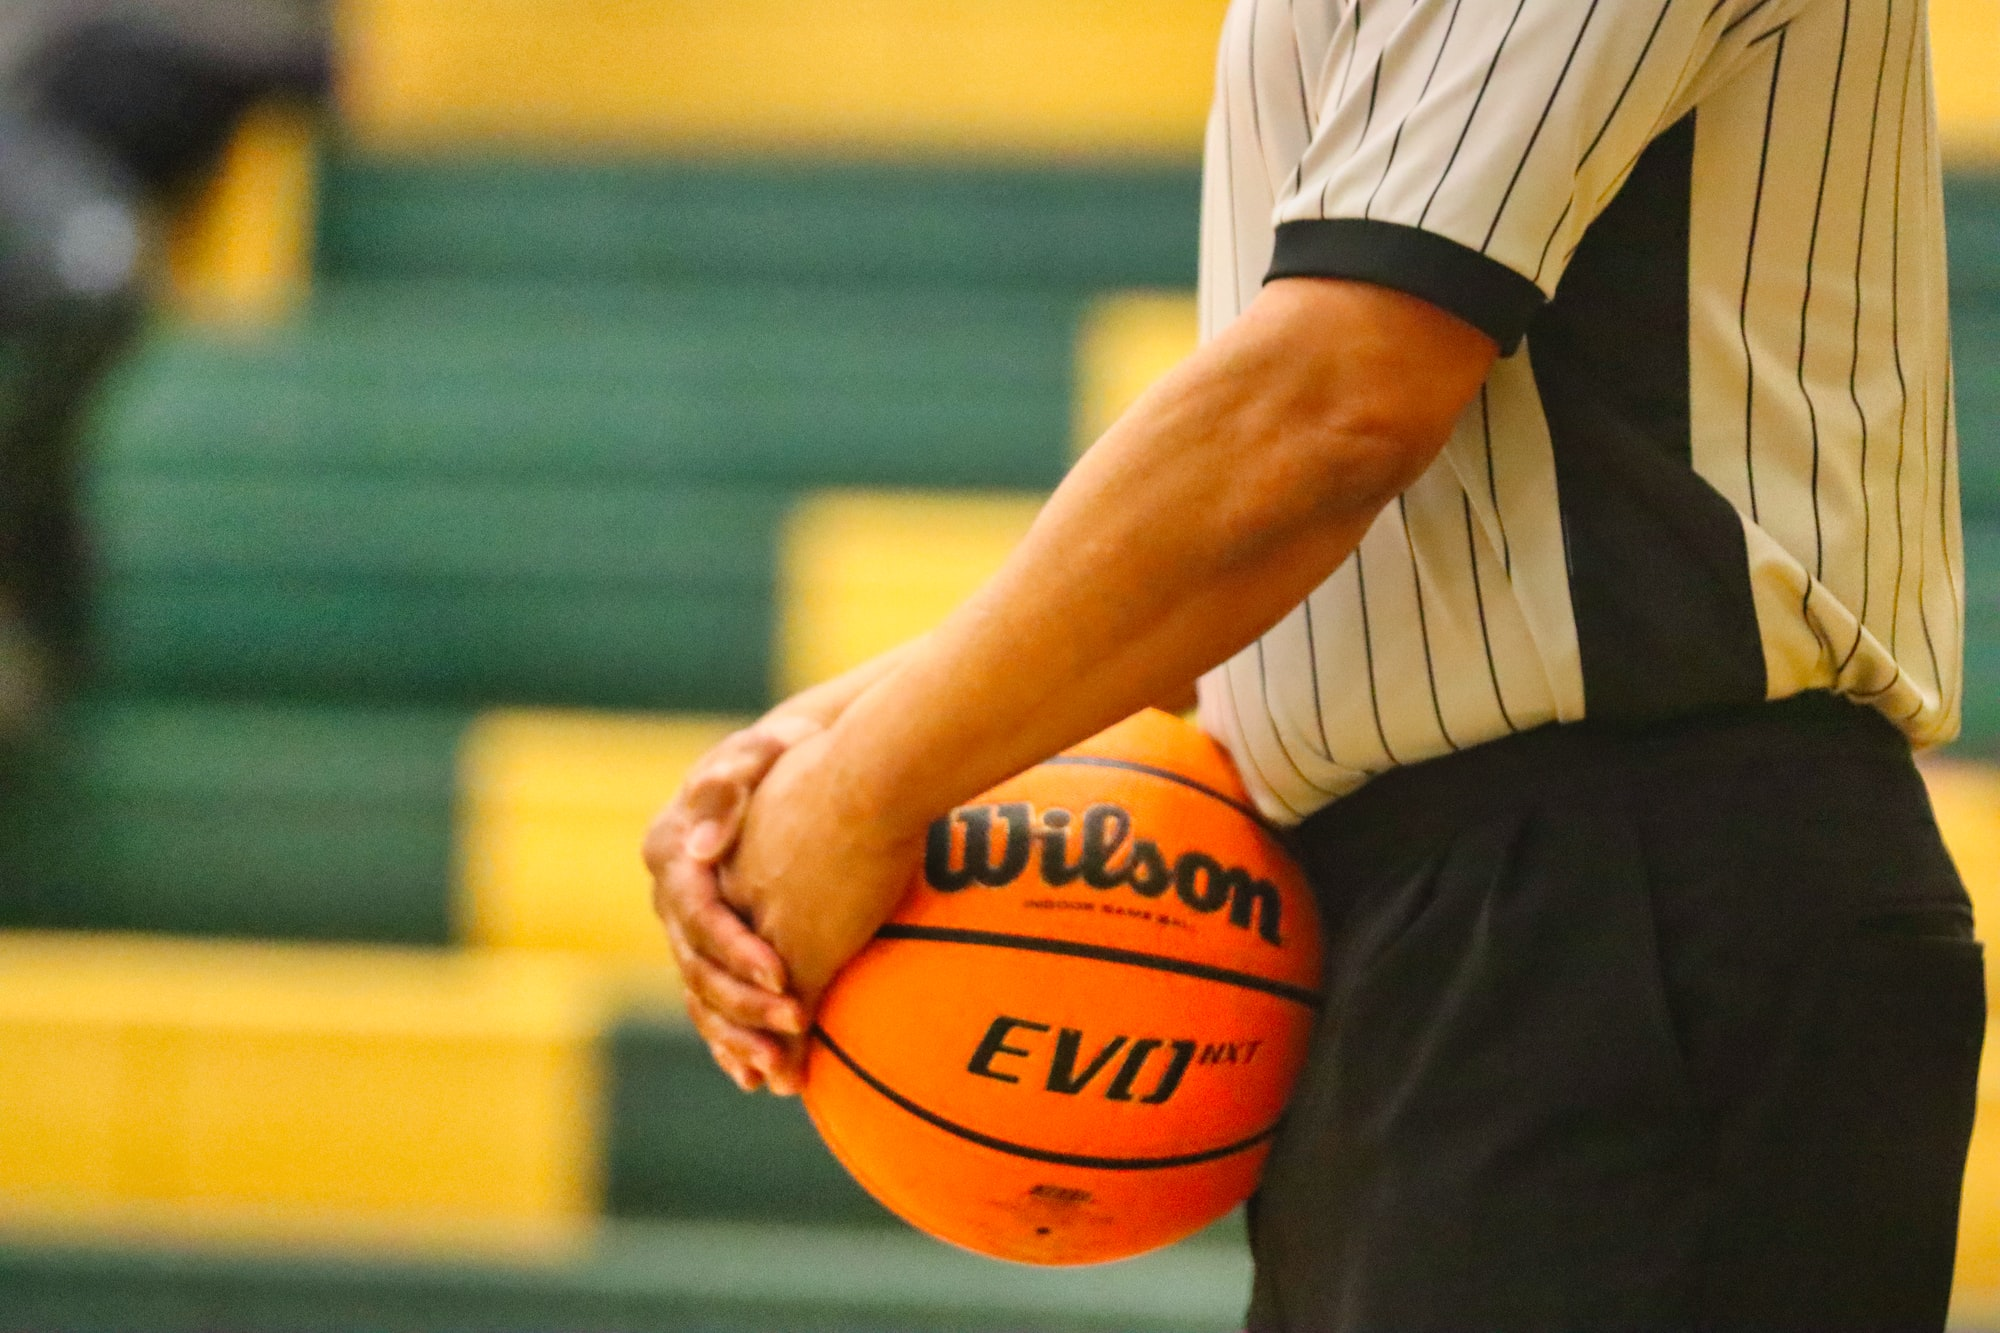 Basketball referee holds on to the basketball during the timeout of a high school basketball game in Pittsboro, North Carolina.